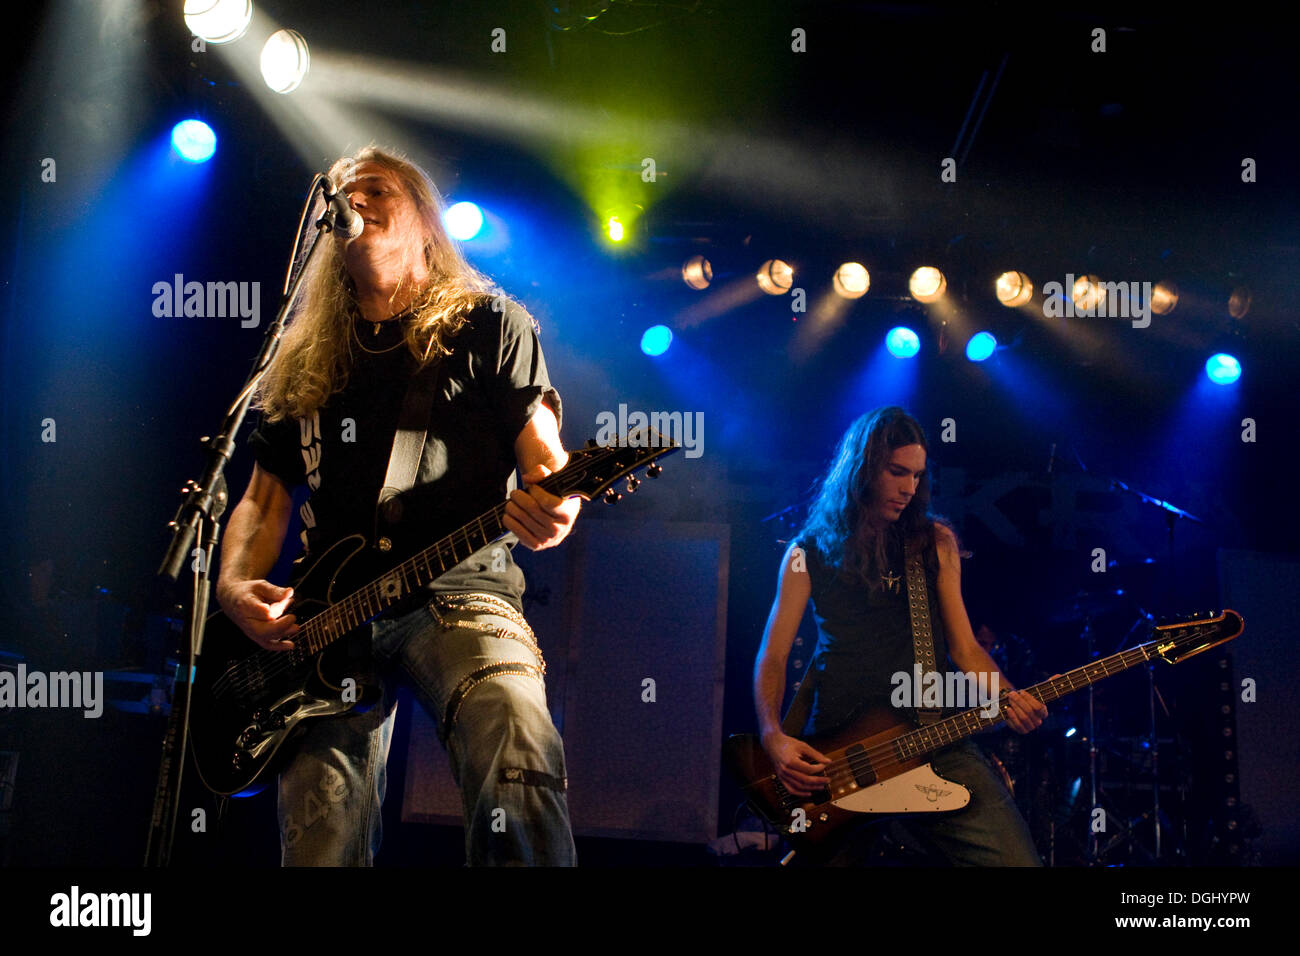 Thomas Muster, guitarist of the Swiss hard rock band Shakra live at the Schueuer concert hall, Lucerne, Switzerland - Stock Image